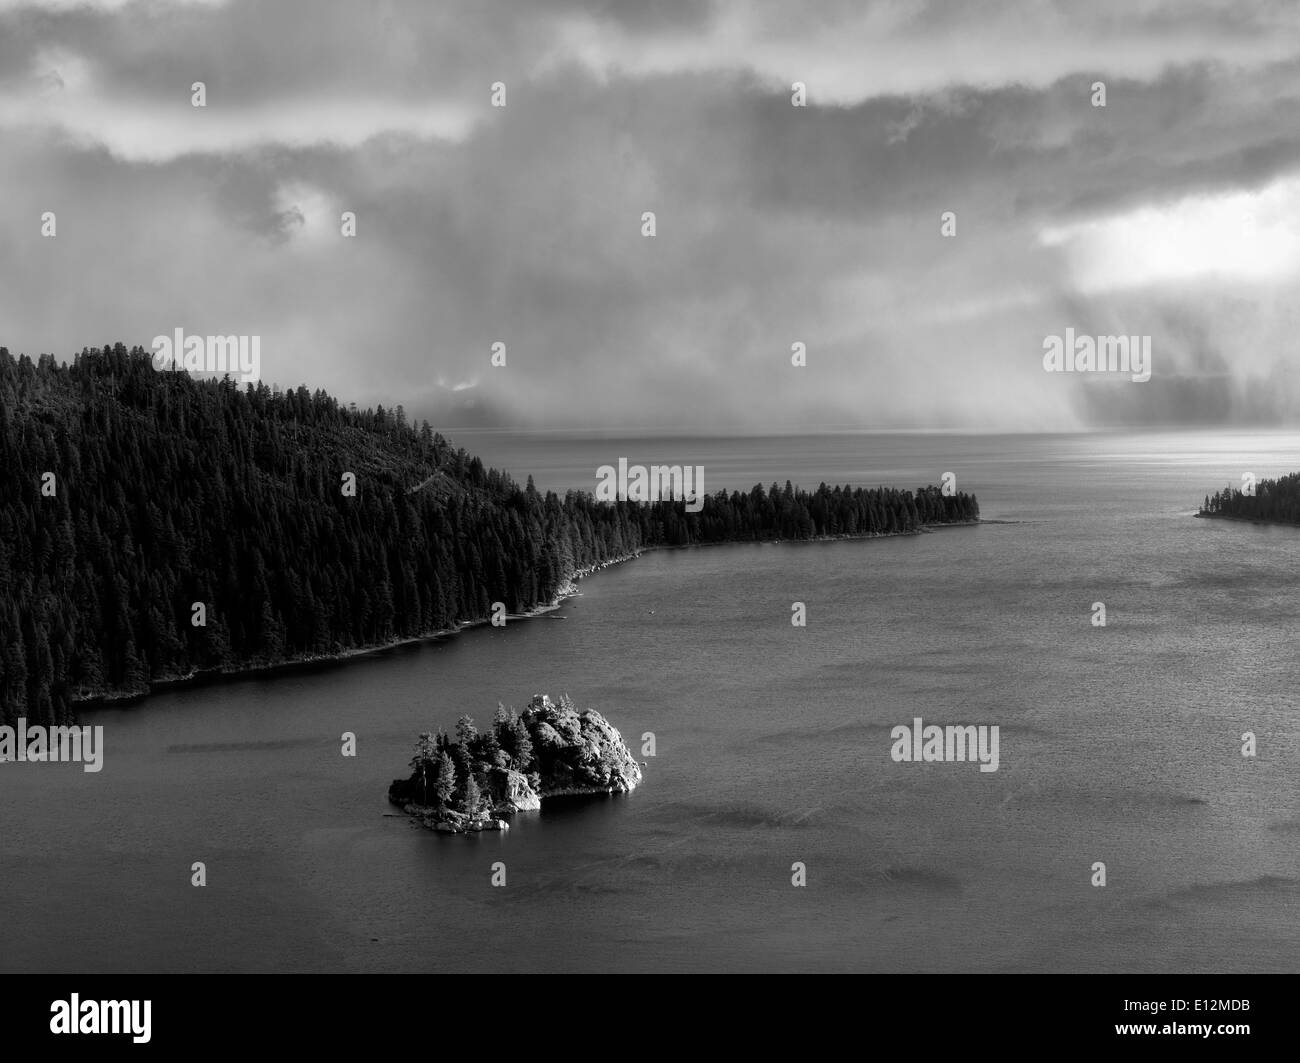 Storm with rain over Emerald Bay and Fannette Island. Lake Tahoe, California. - Stock Image